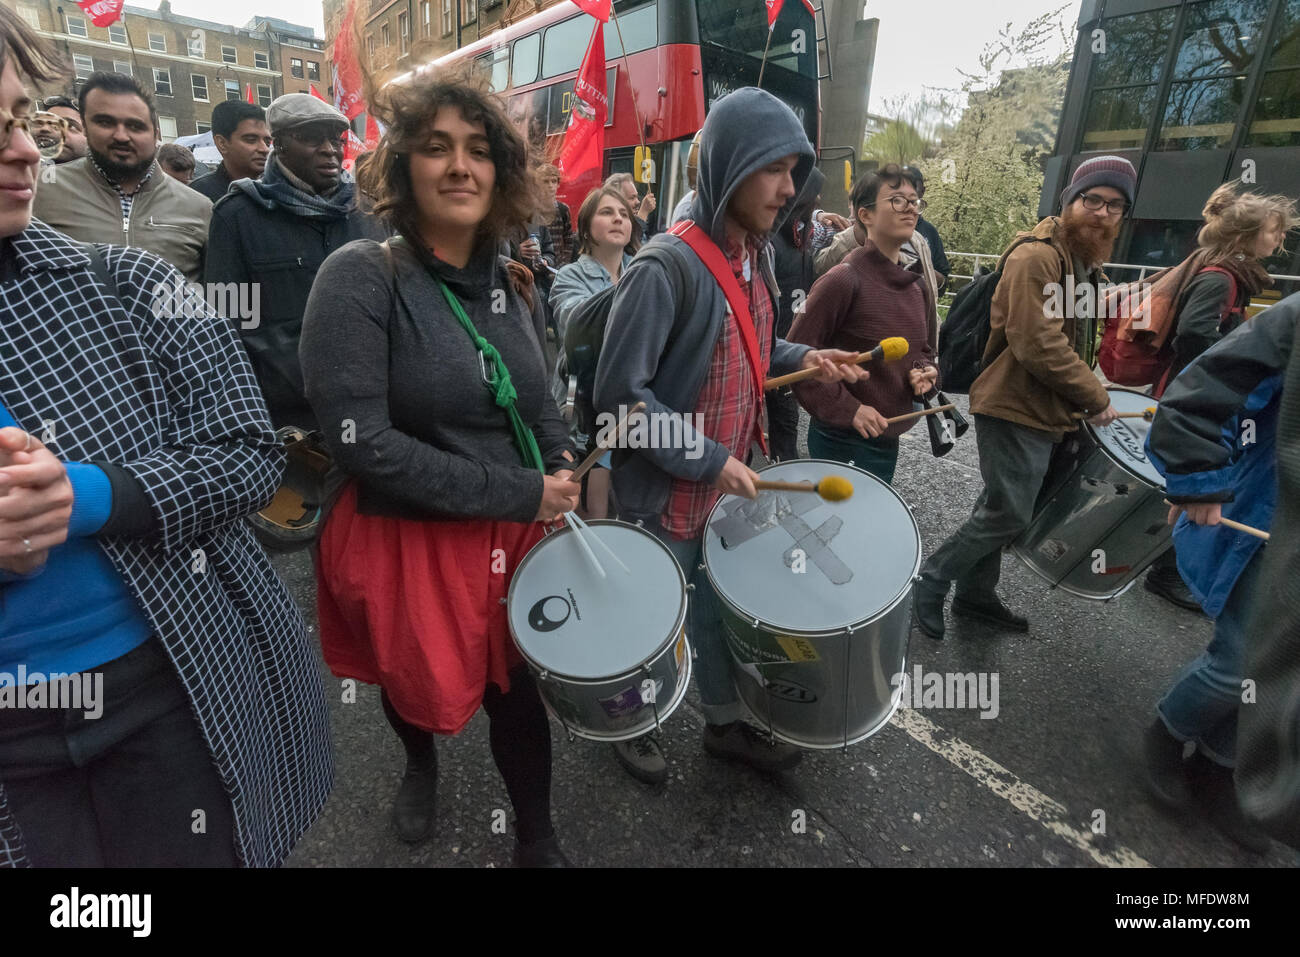 London, UK. 25th April 2018. The samba band on the march from the rally by workers, students and other trade unionists supporting over 100 cleaners, porters, security officers, receptionists, gardeners, post room staff and audiovisual staff in the Independent Workers Union of Great Britain - IWGB at the end of the first day of a two day strike at the University of London central administration. The workers, employed by various outsourcing companies are demanding to be directly employed by the University, and receive the same conditions and benefits as directly employed colleagues; outsourced w - Stock Image